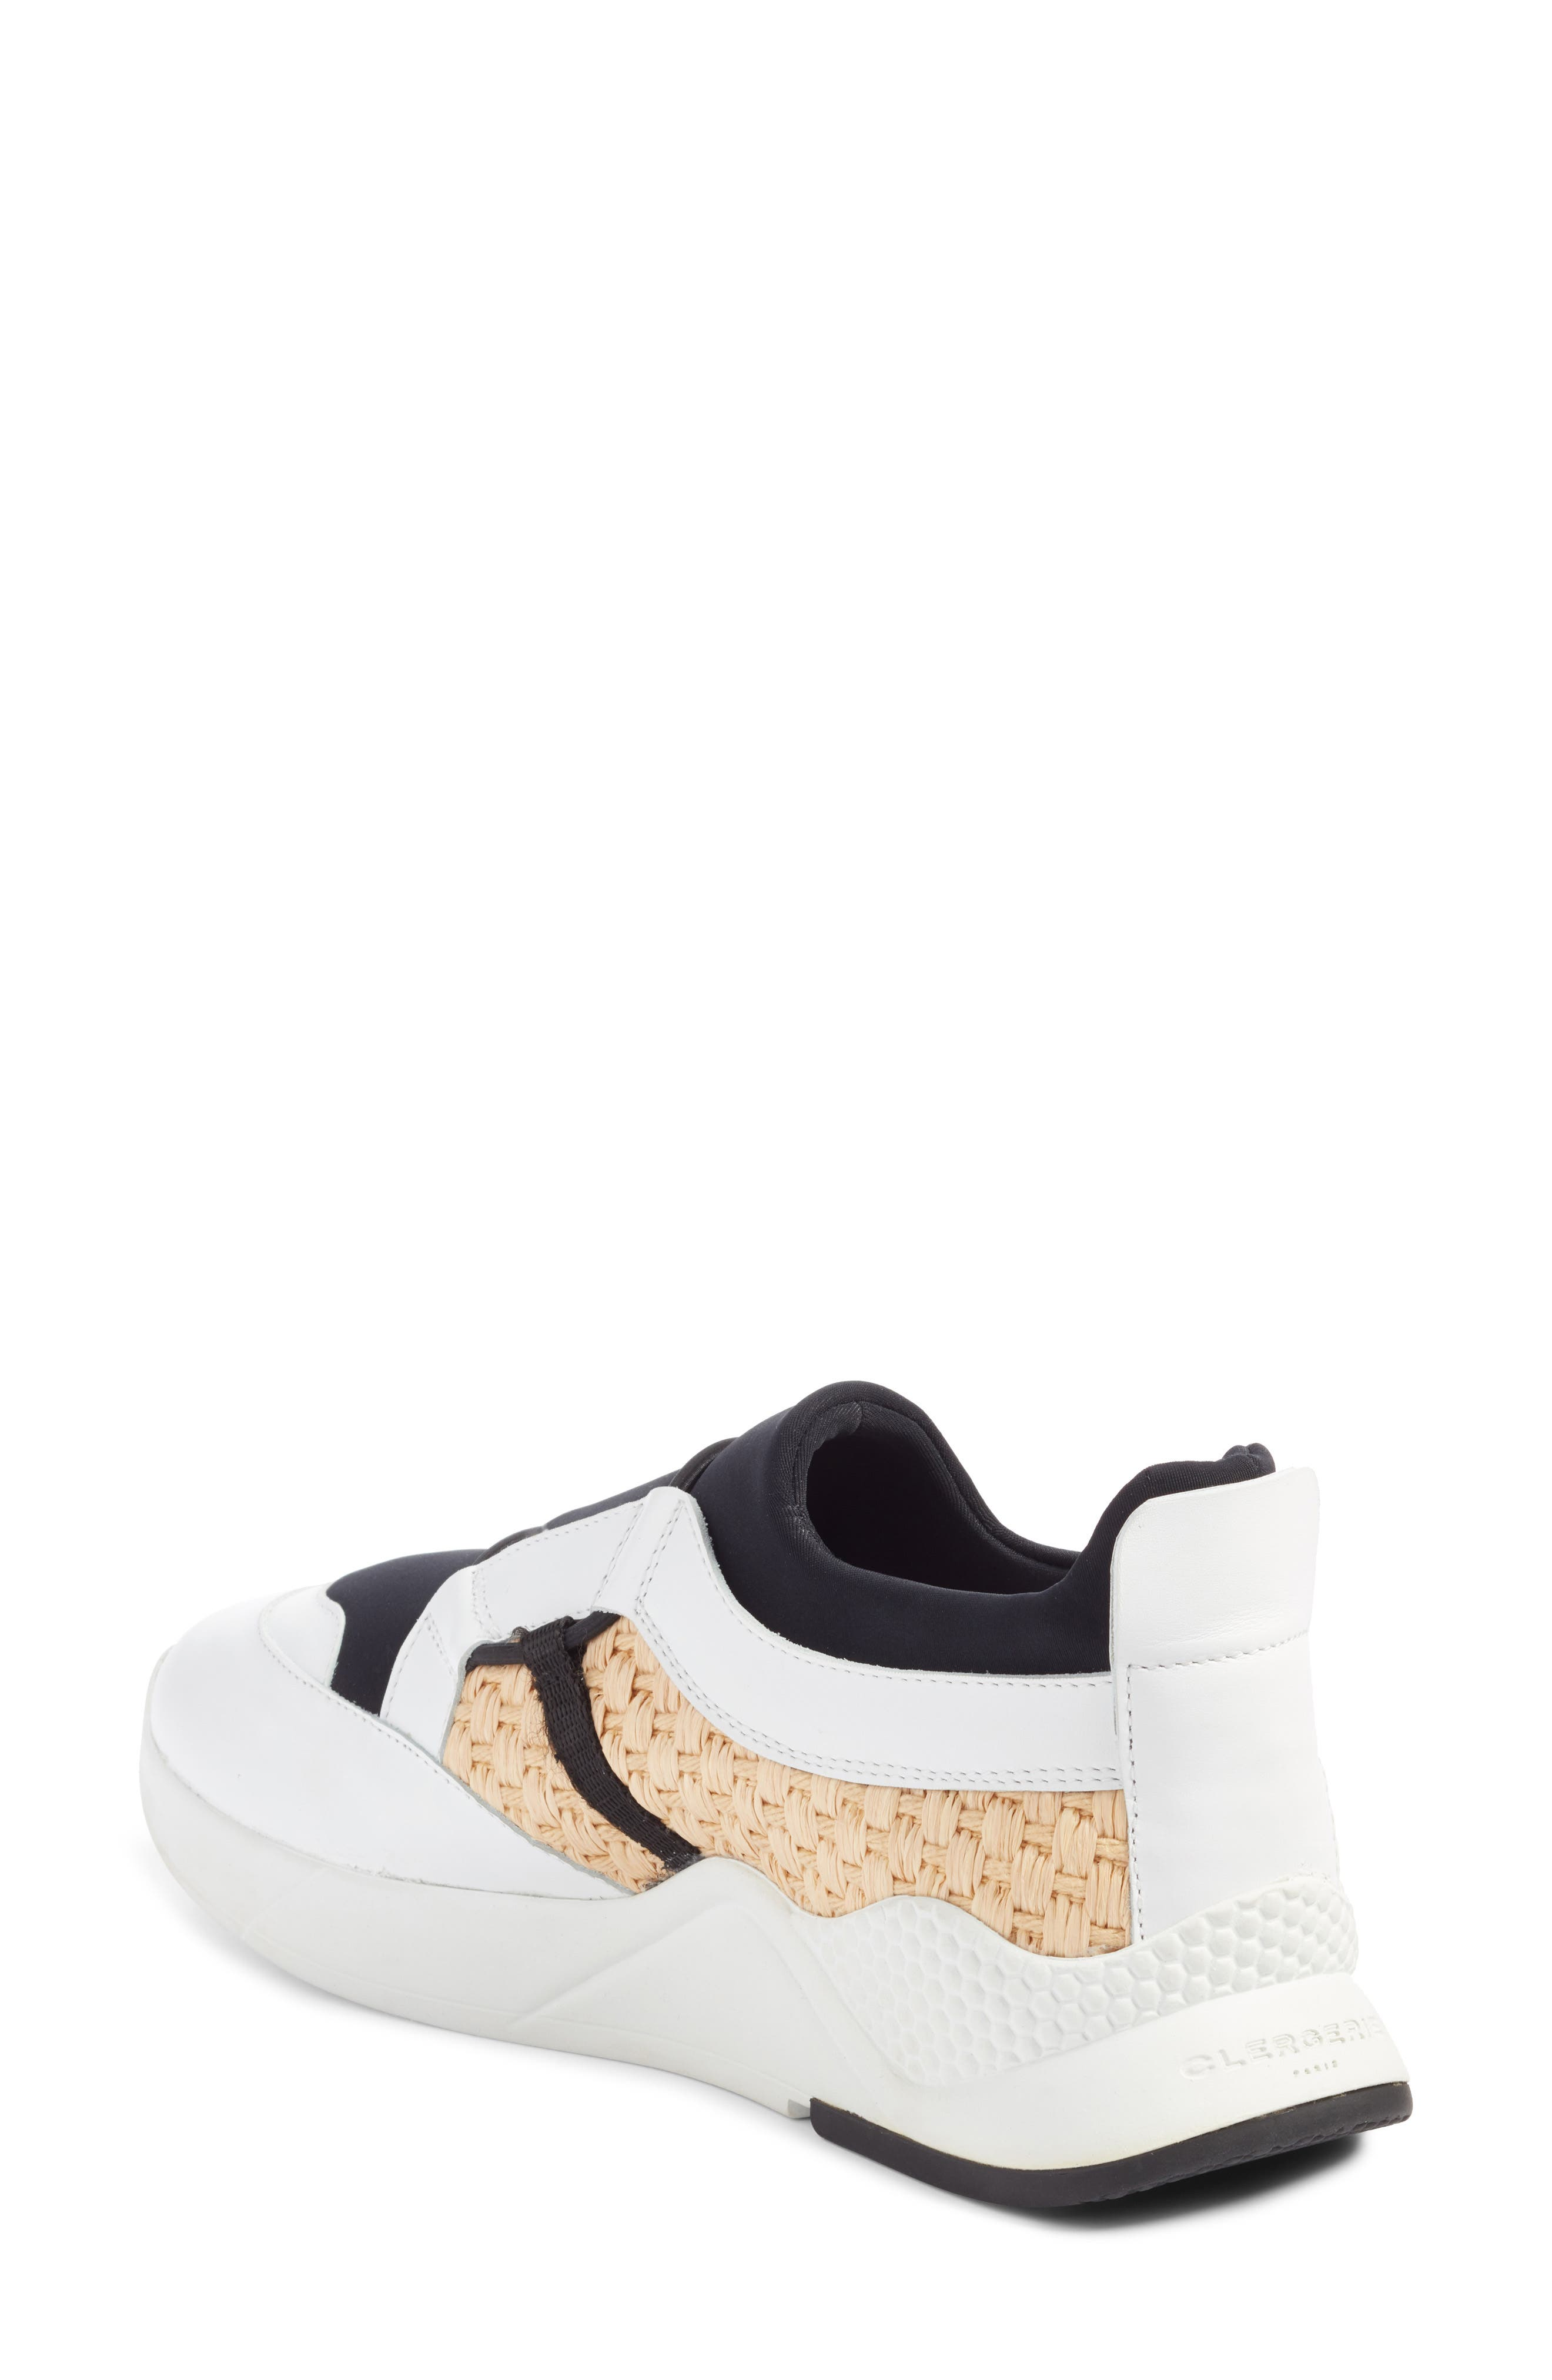 Alternate Image 2  - Robert Clergerie Salvy Woven Sneaker (Women)